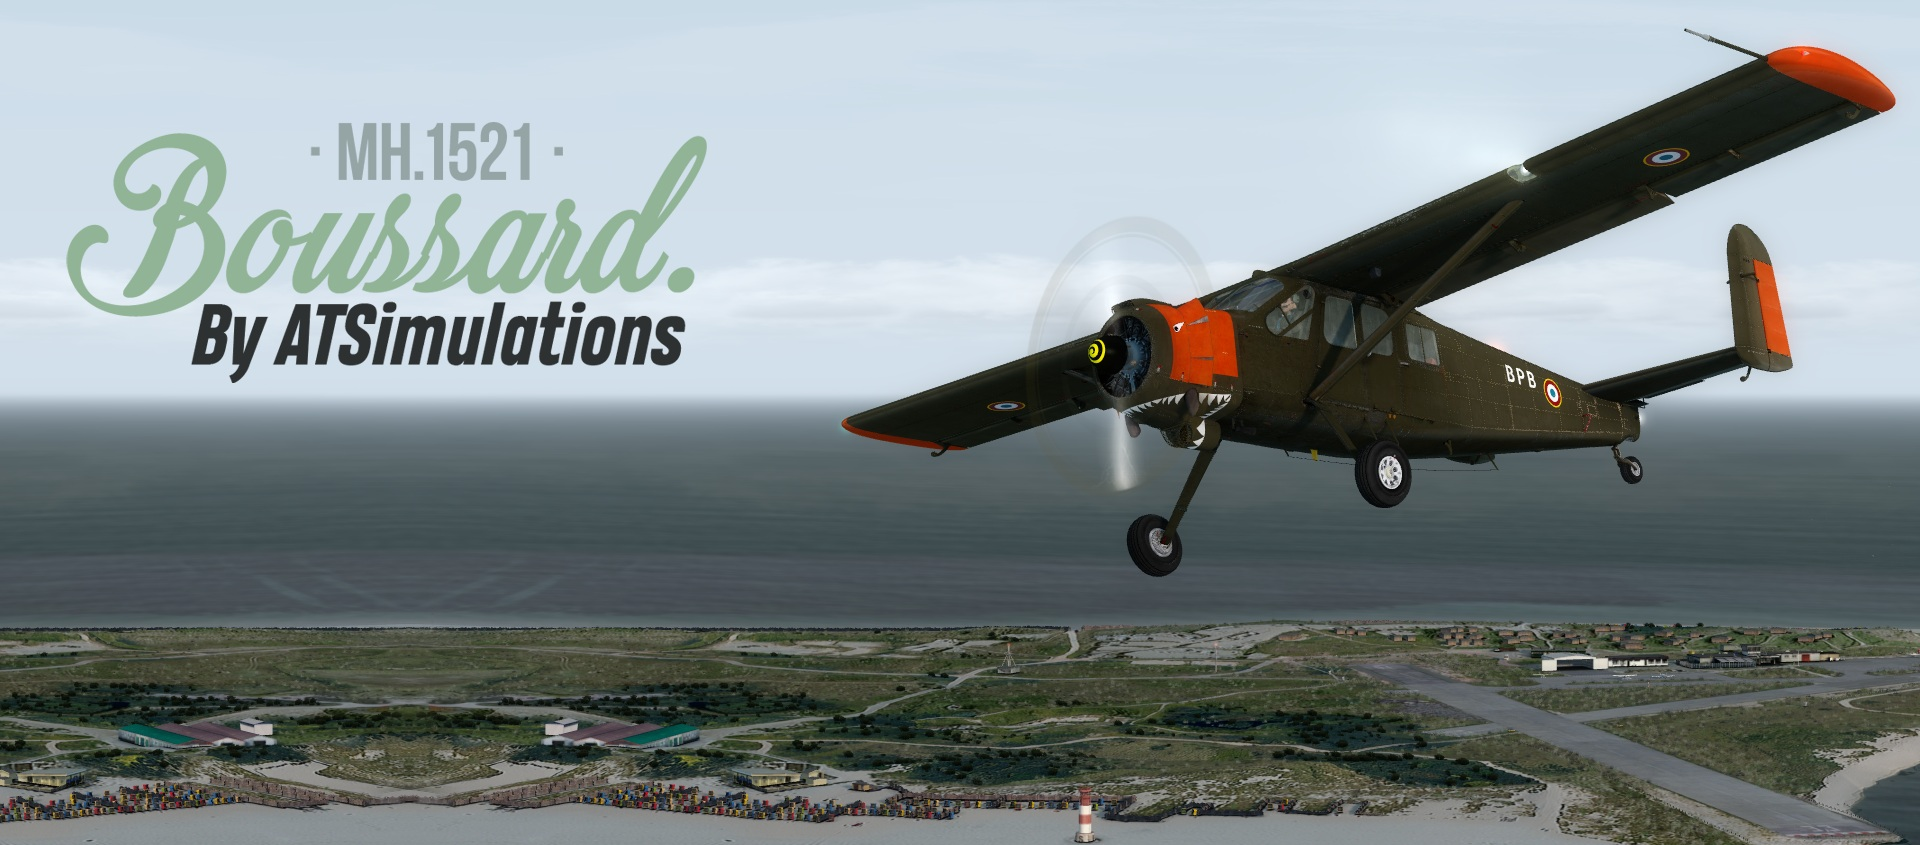 ATSimulations – Max Holste MH.1521 Broussard Review